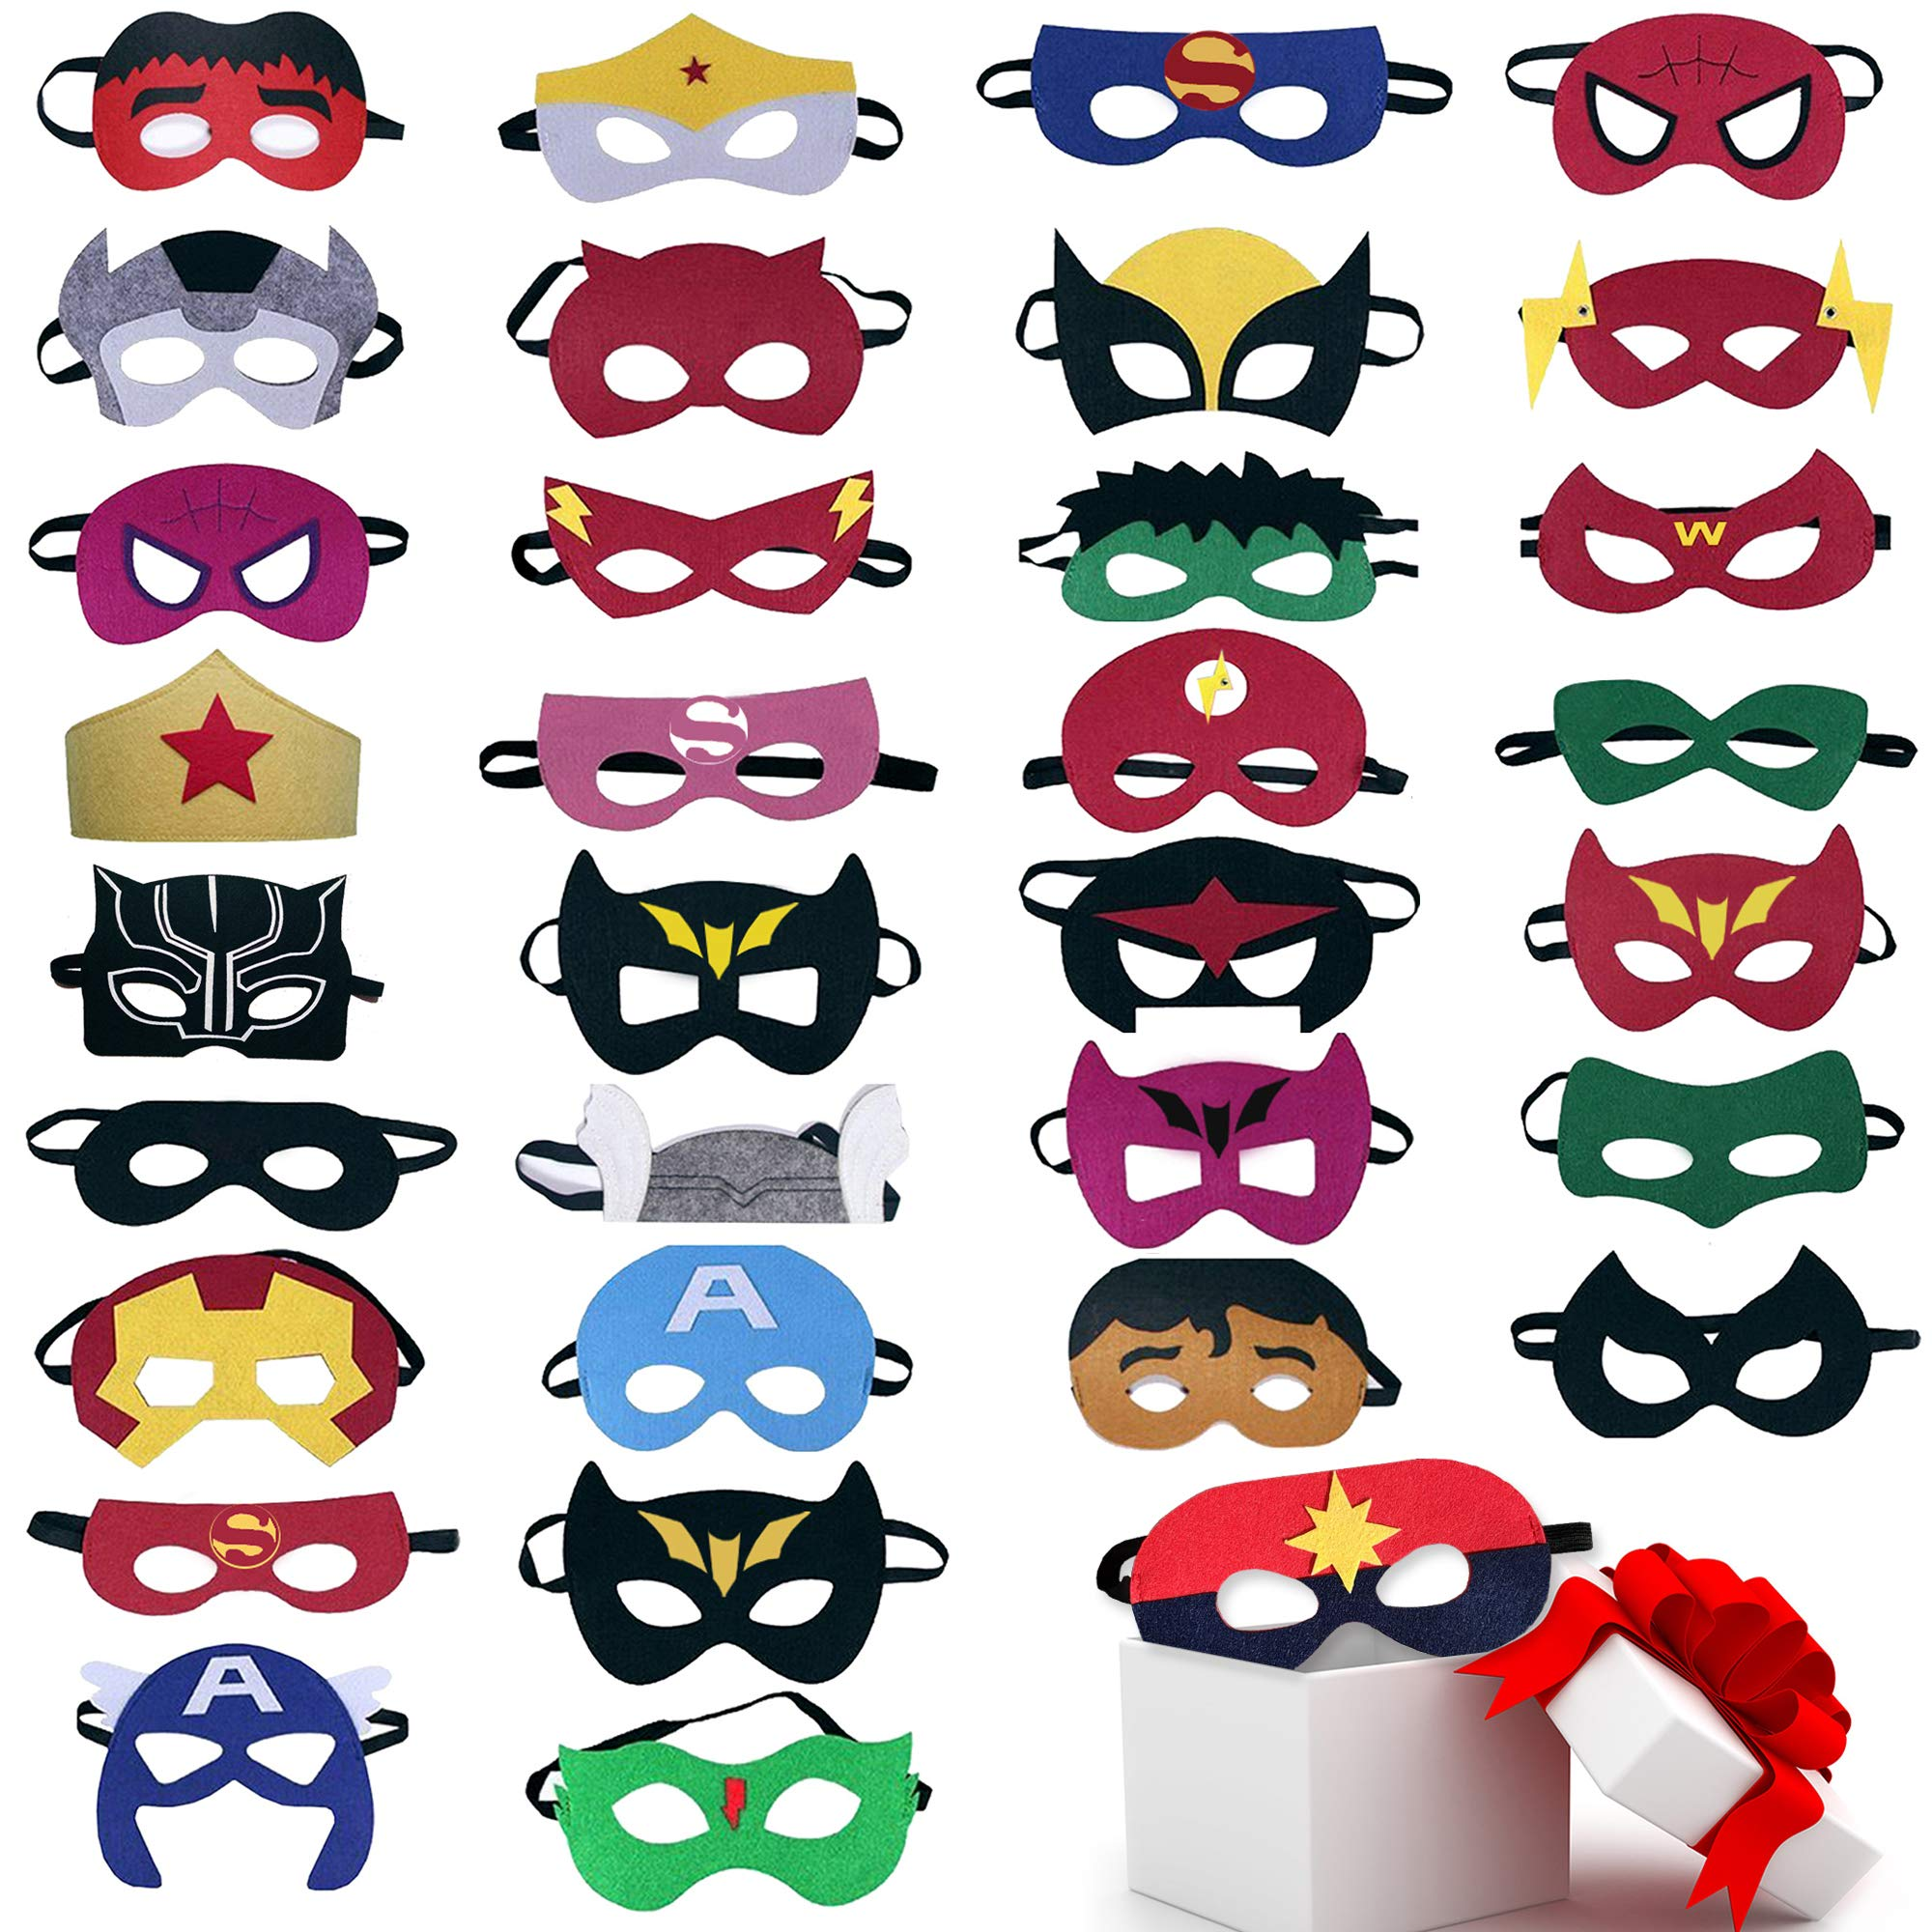 TEEHOME Superhero Masks Party Favors for Kid (33 Packs) Felt and Elastic - Superheroes Birthday Party Masks with 33 Different Types Perfect for Children by TEEHOME